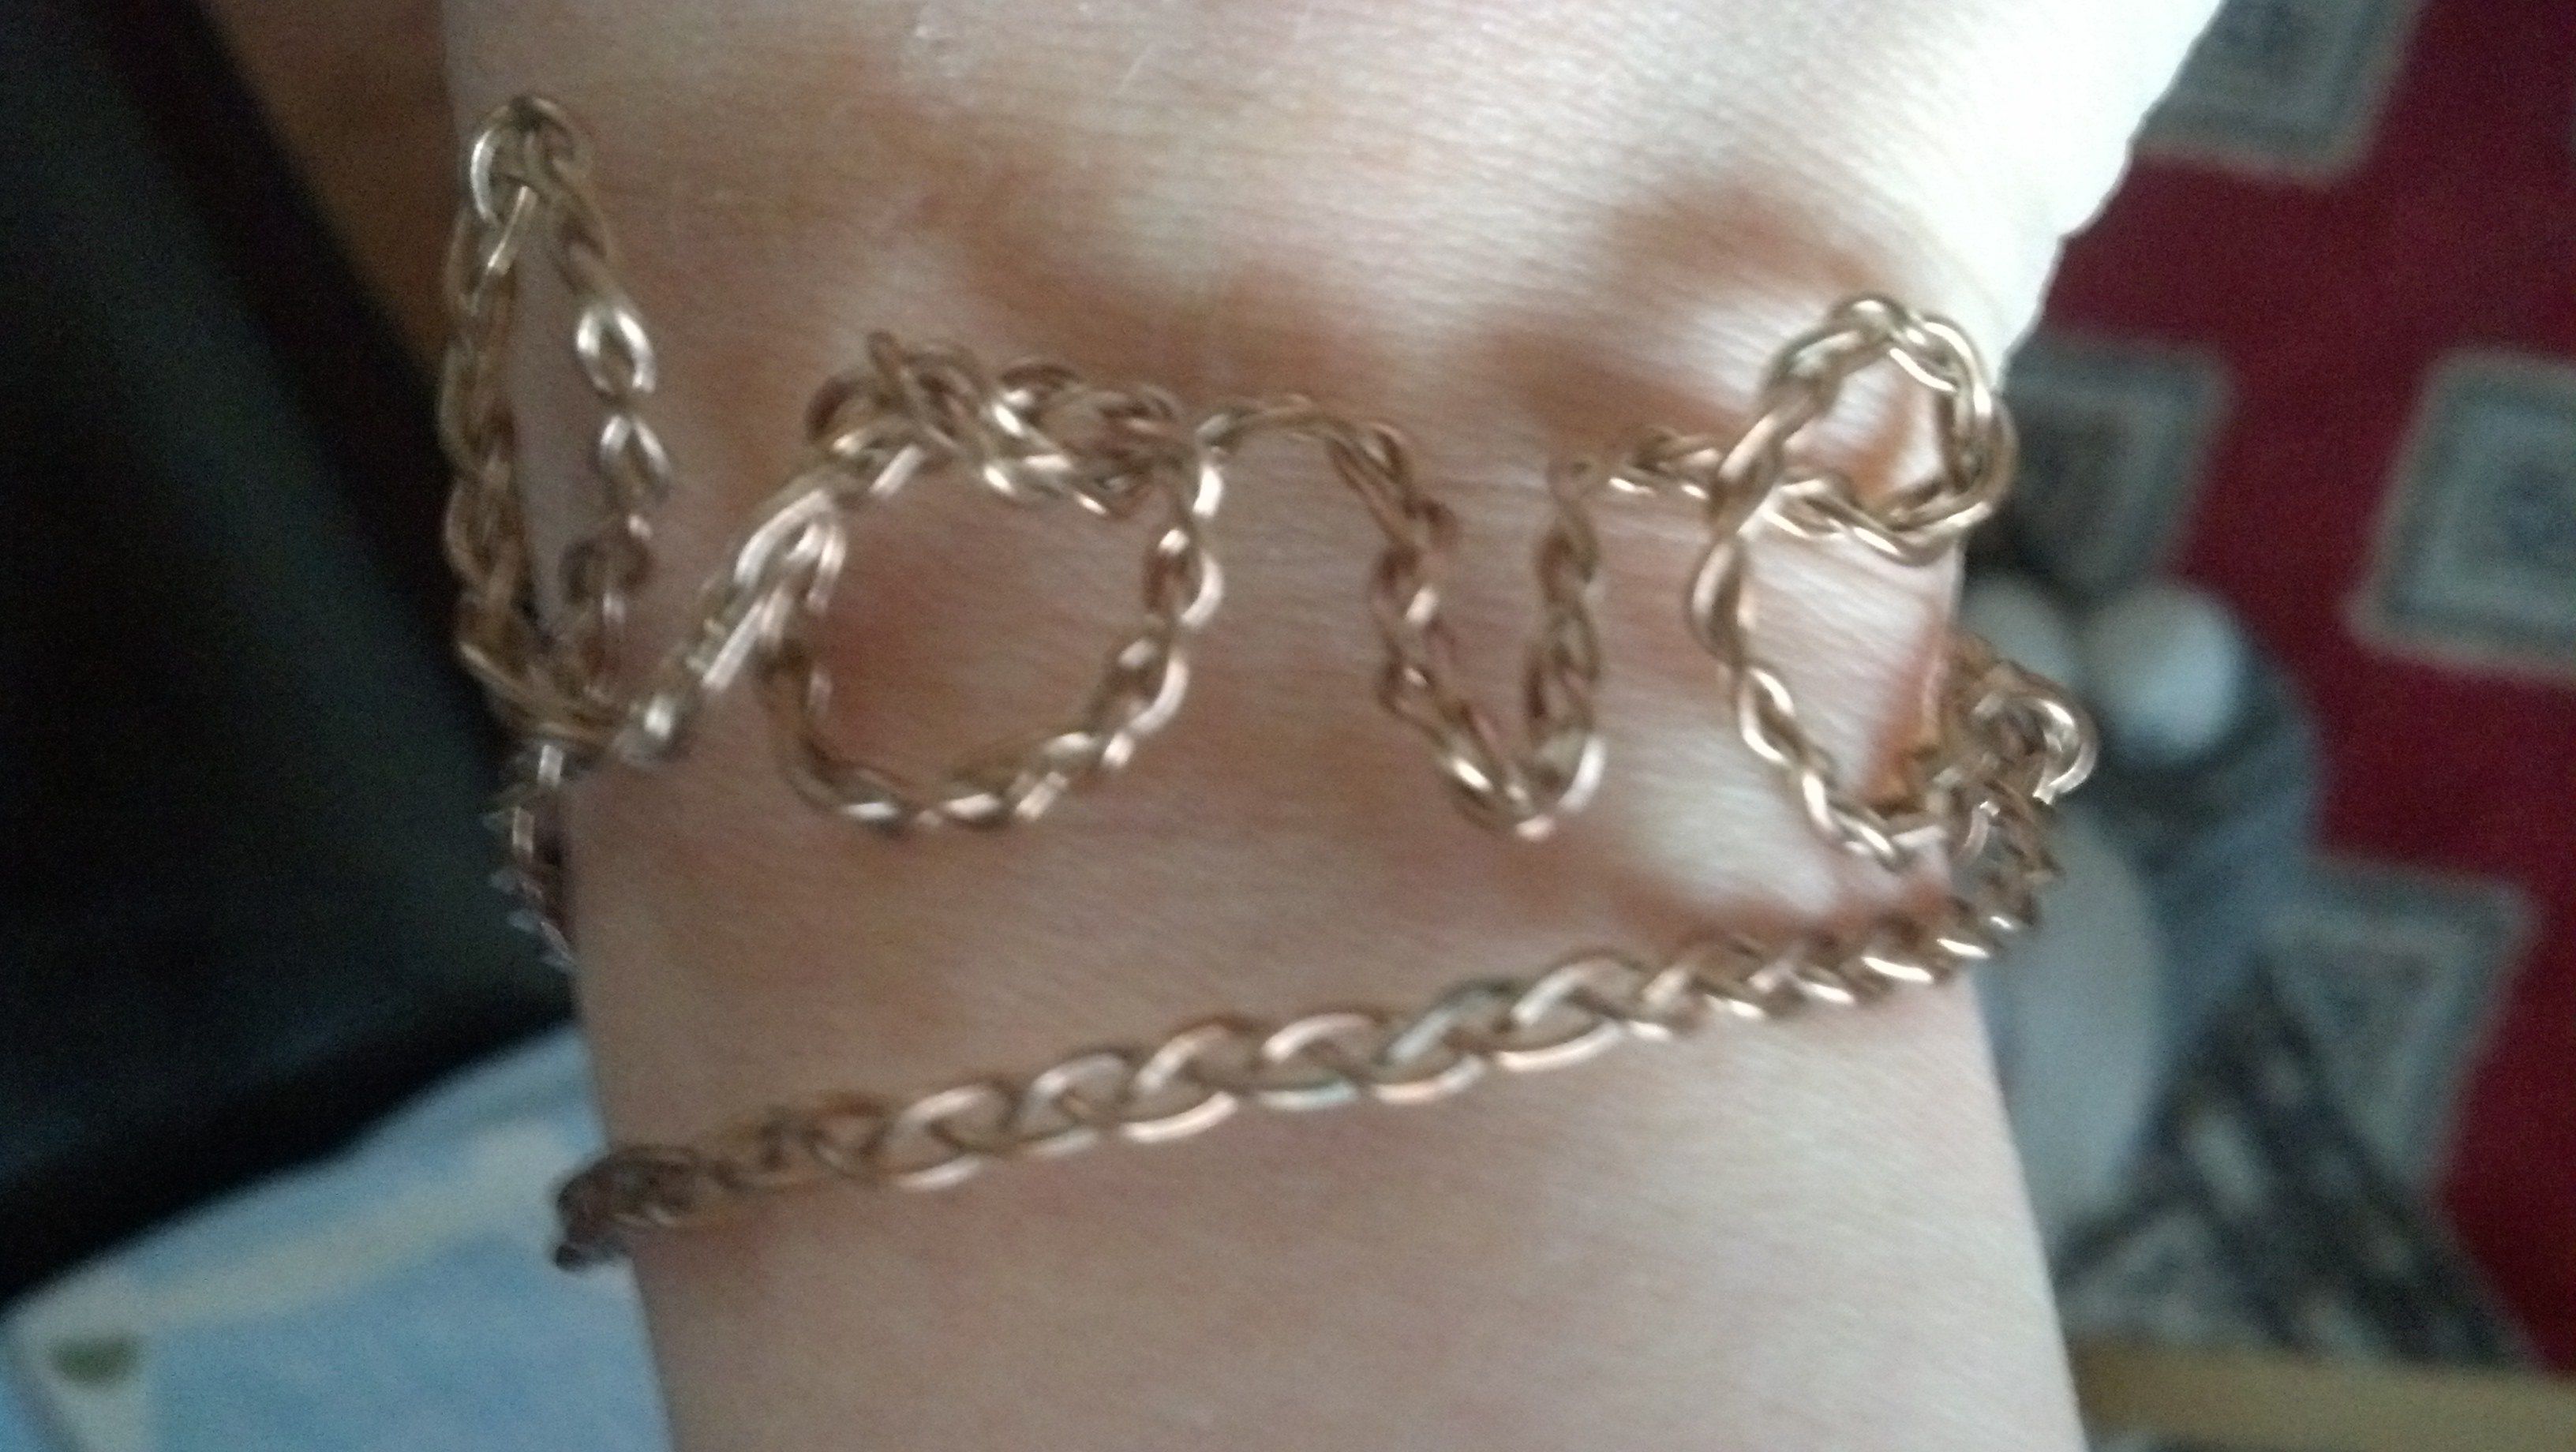 Easy DIY: Love Bracelet Braid wire, twist and bend into letters to spell love then pinch ends in